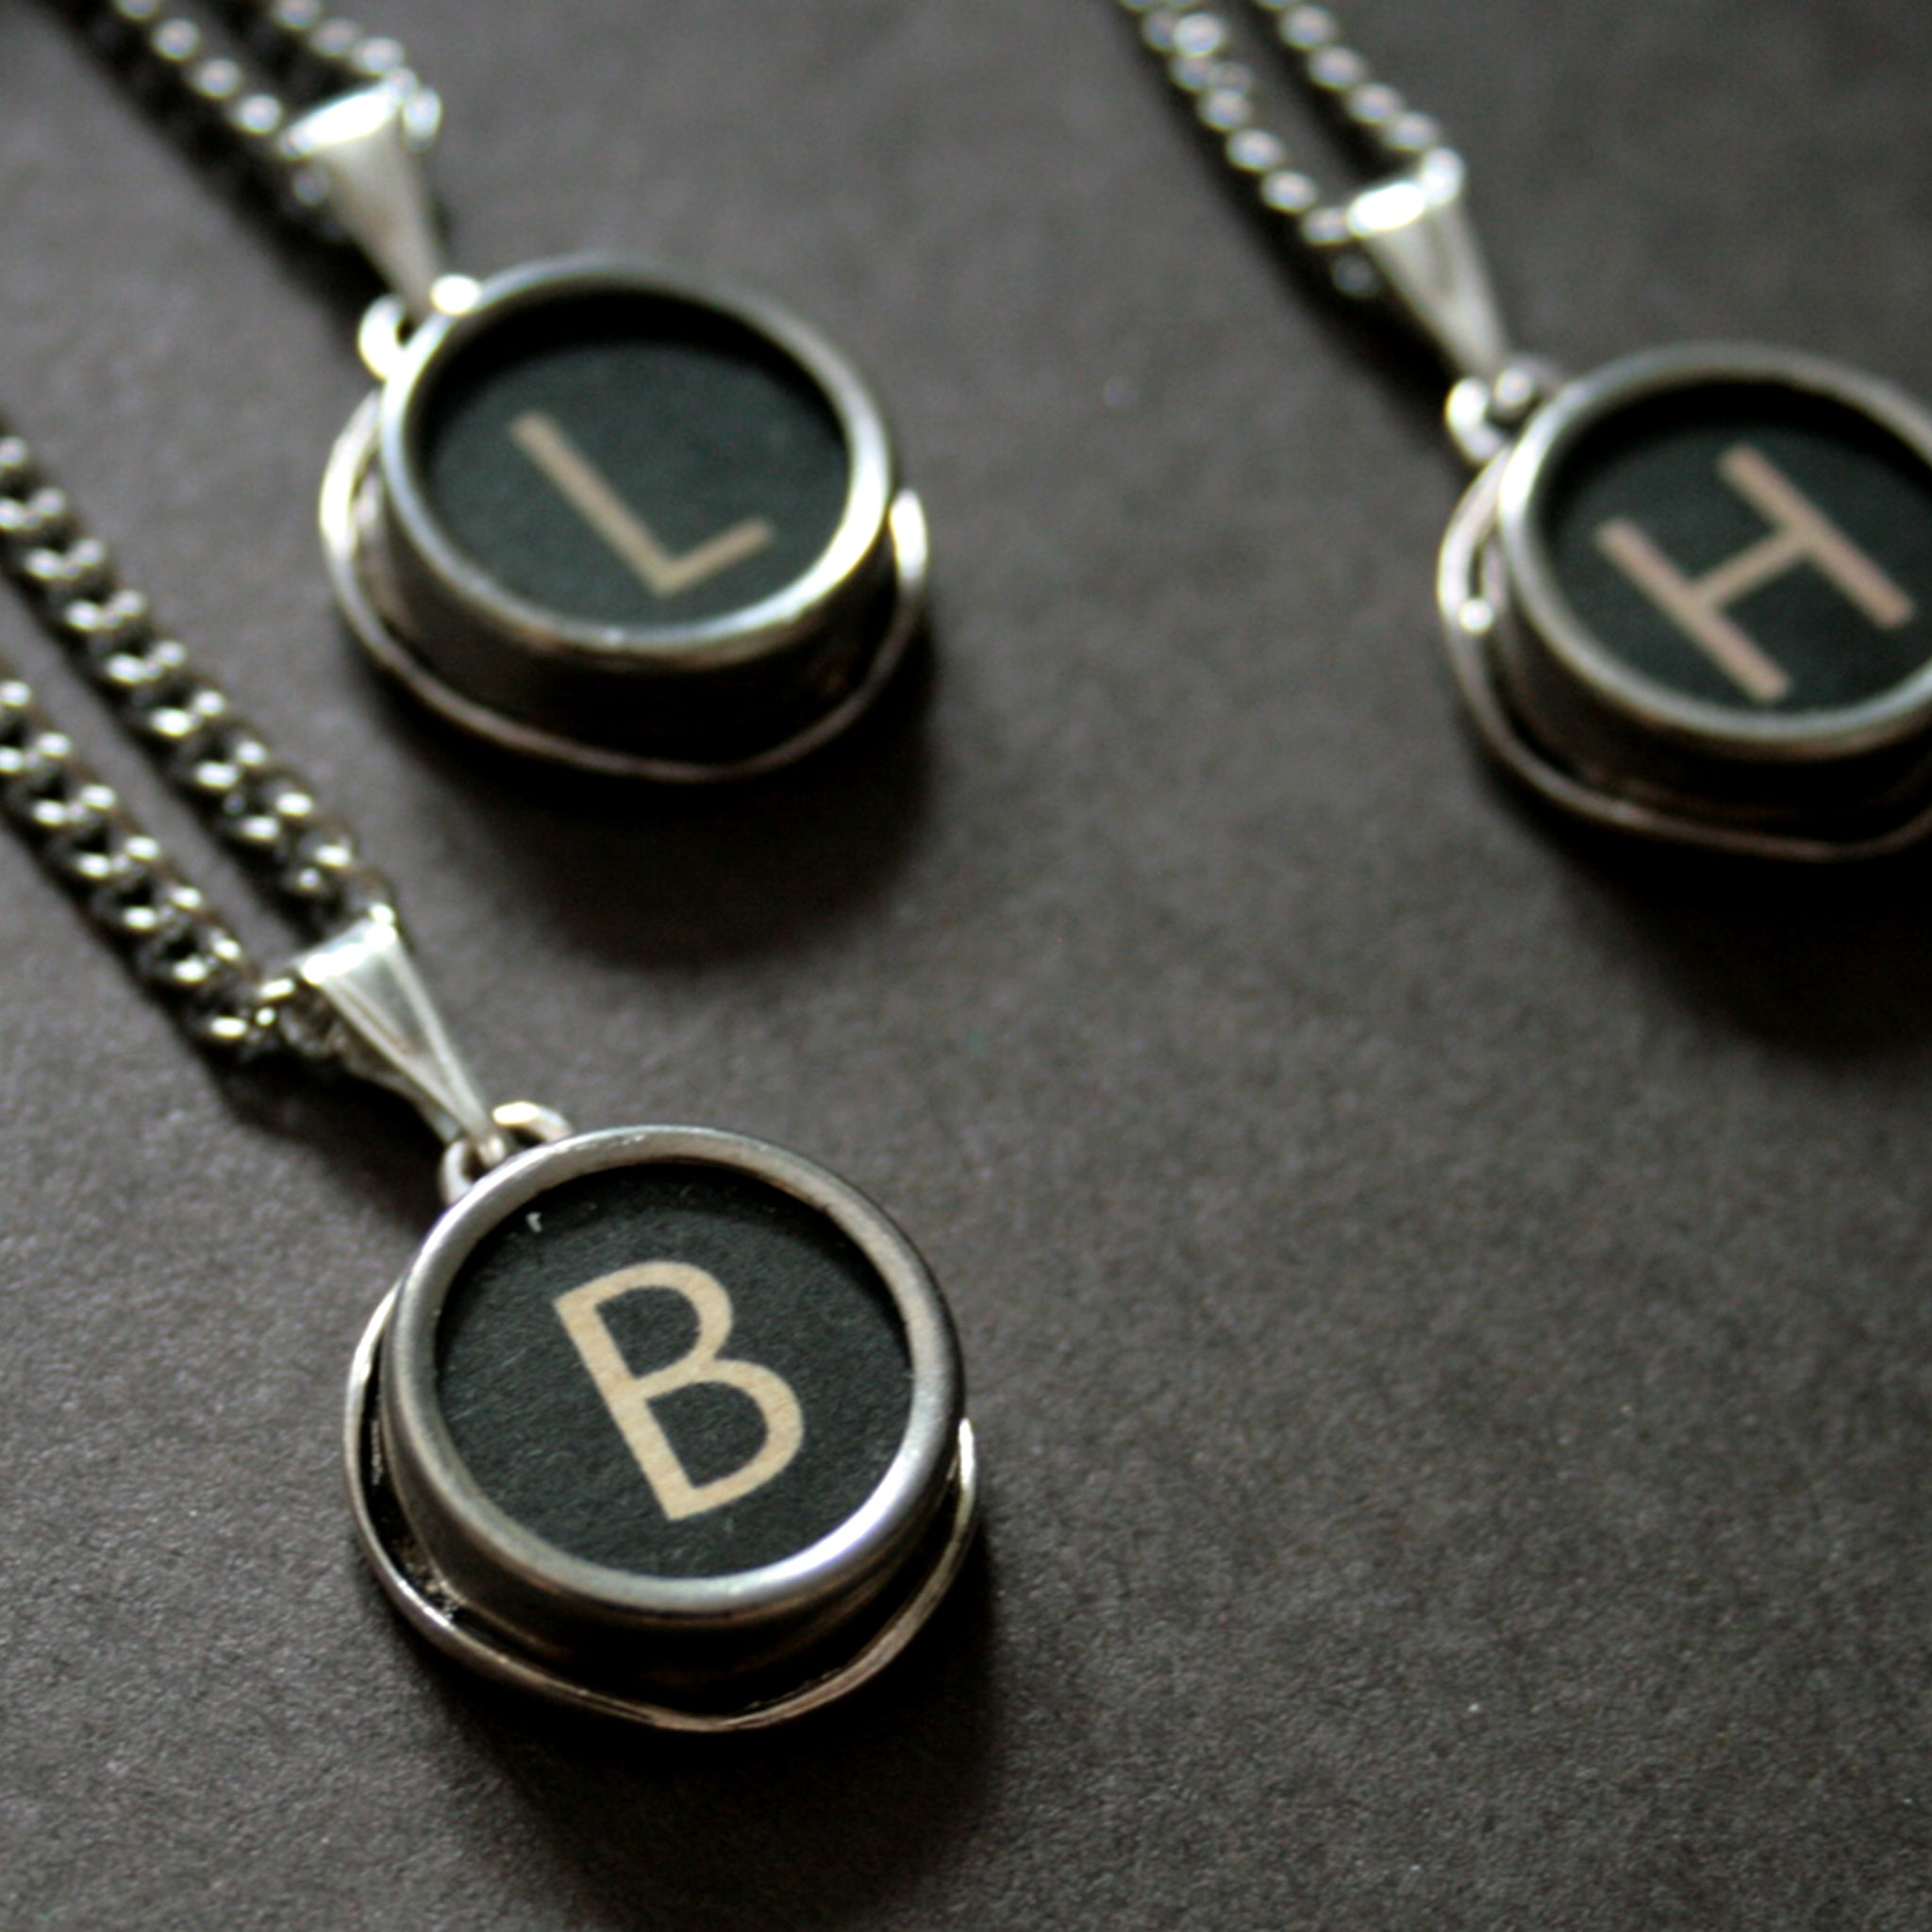 initial necklace made of authentic vintage black typewriter key